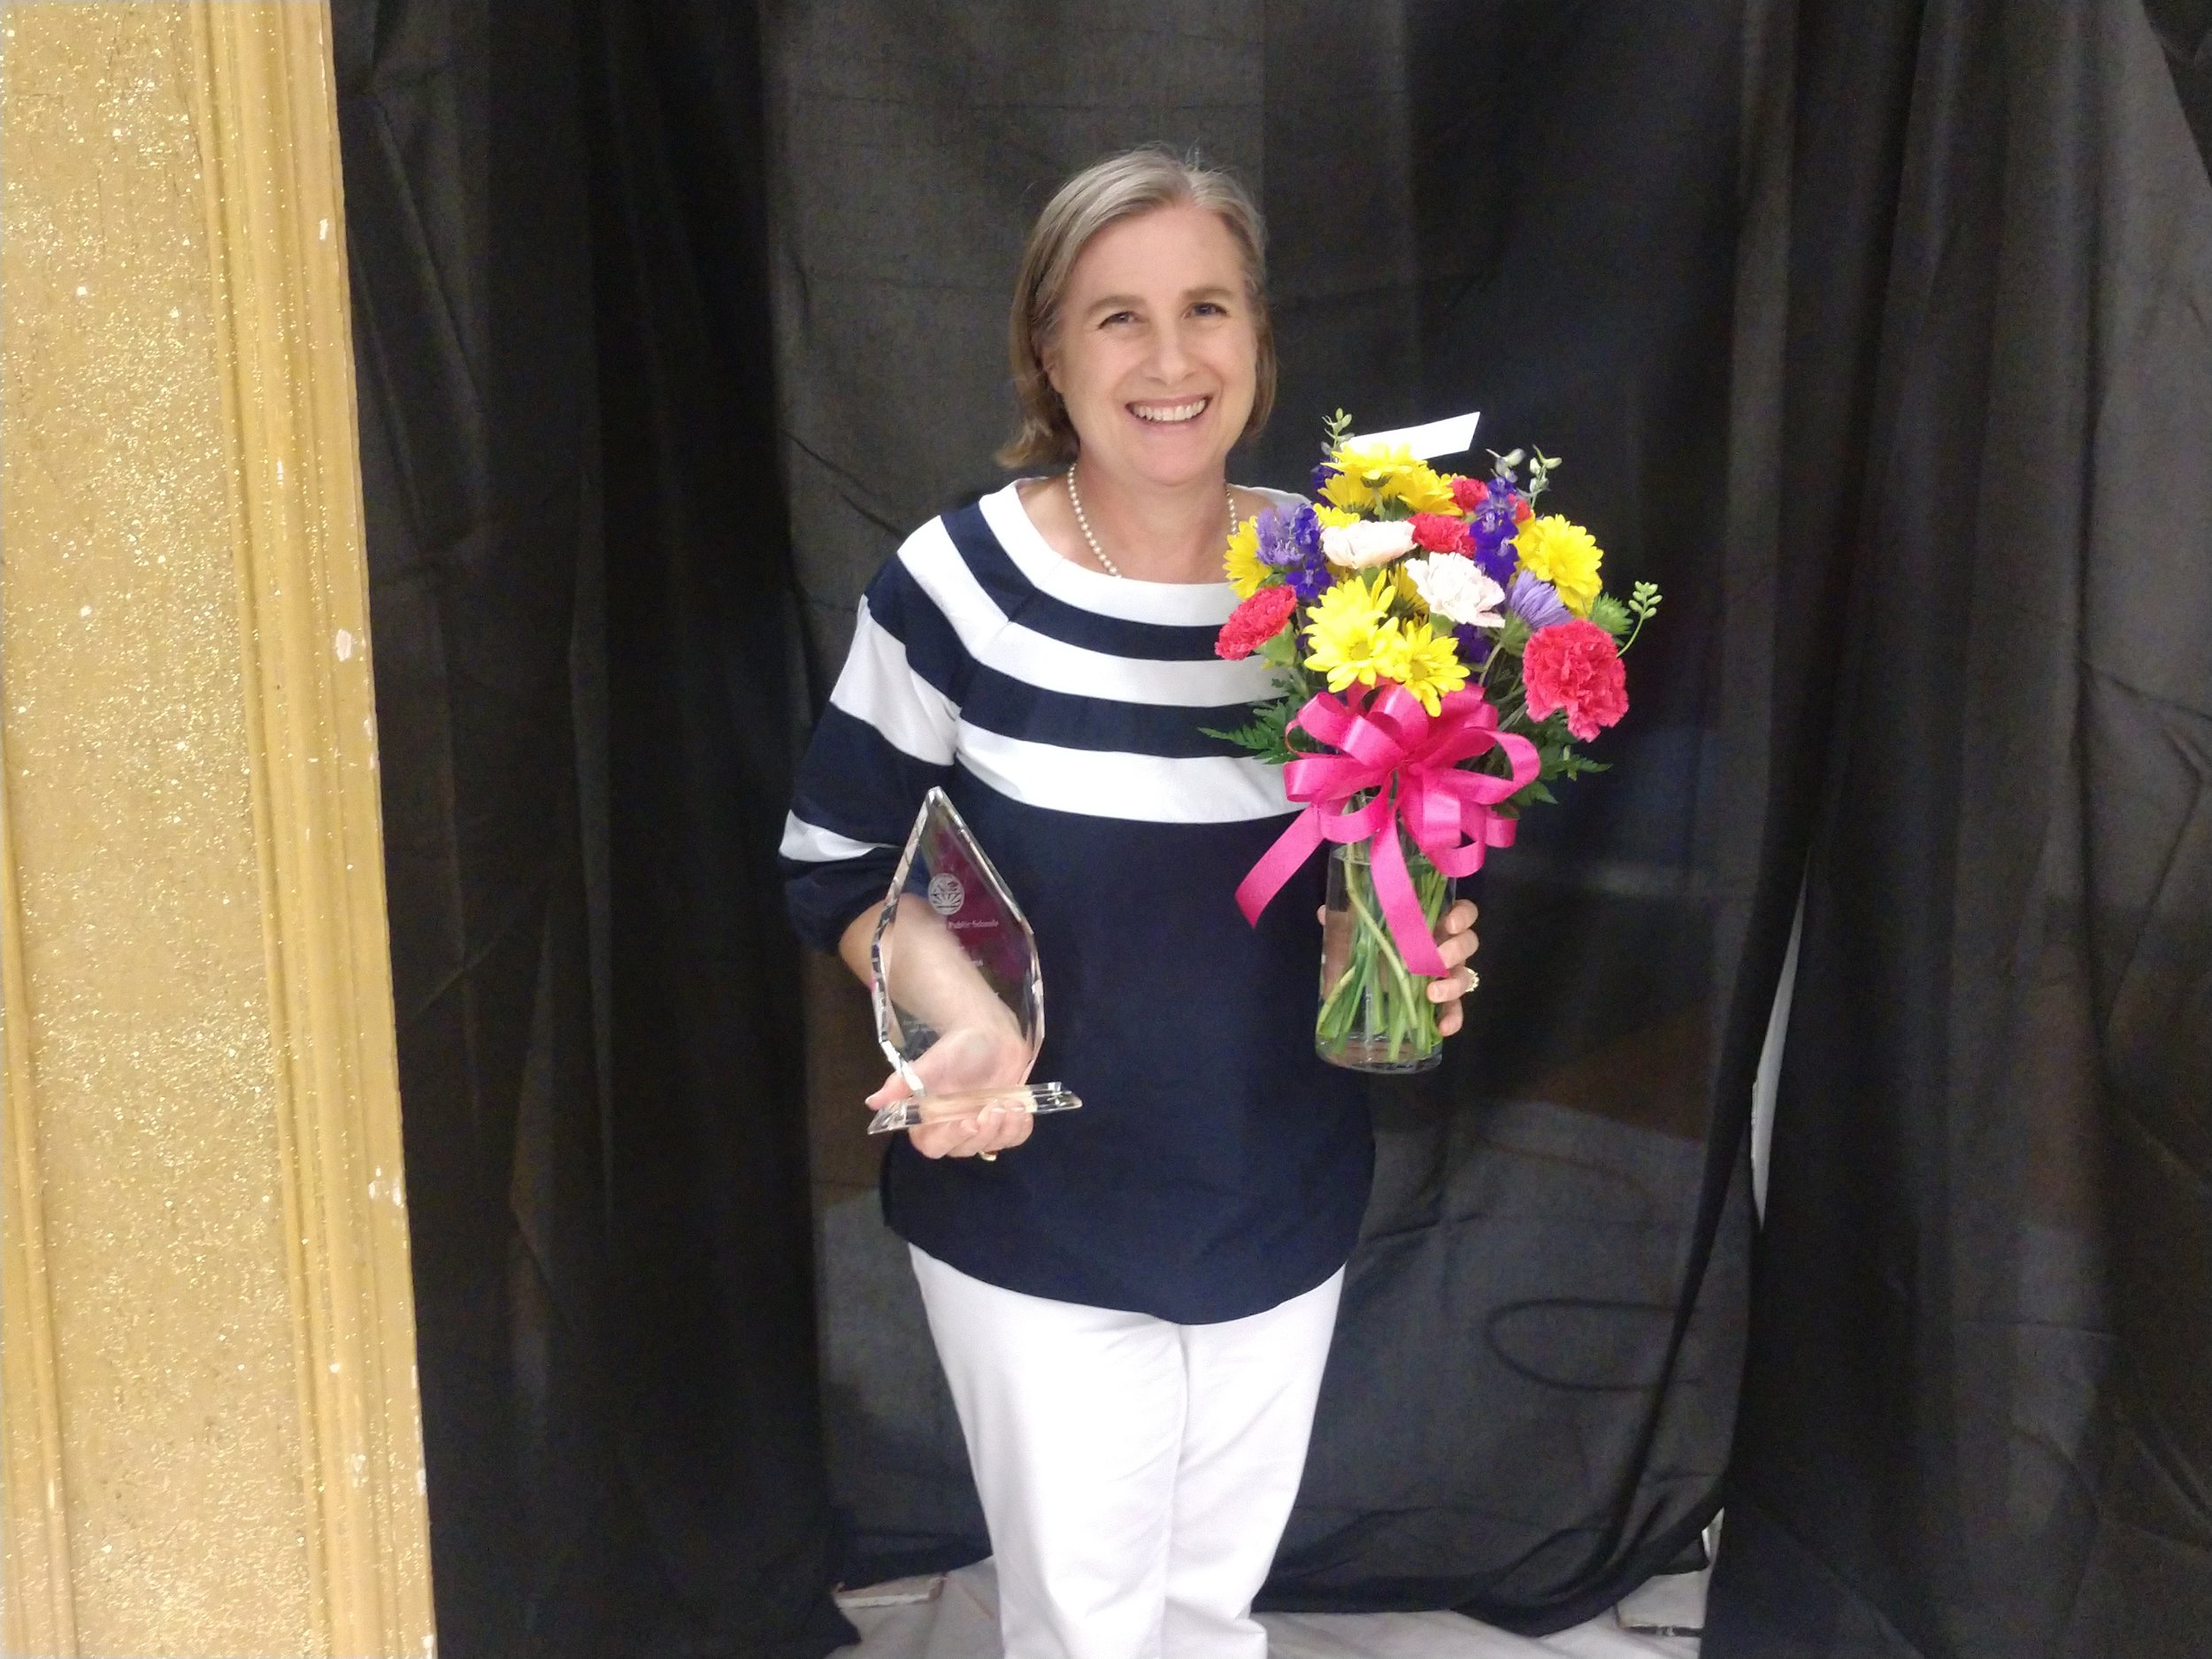 Comfort Elementary's Stella Downs was awarded with Principal of the Year honors during the Jones County School's End of Year Gala Wednesday. Photo by Junious Smith III / Neuse News